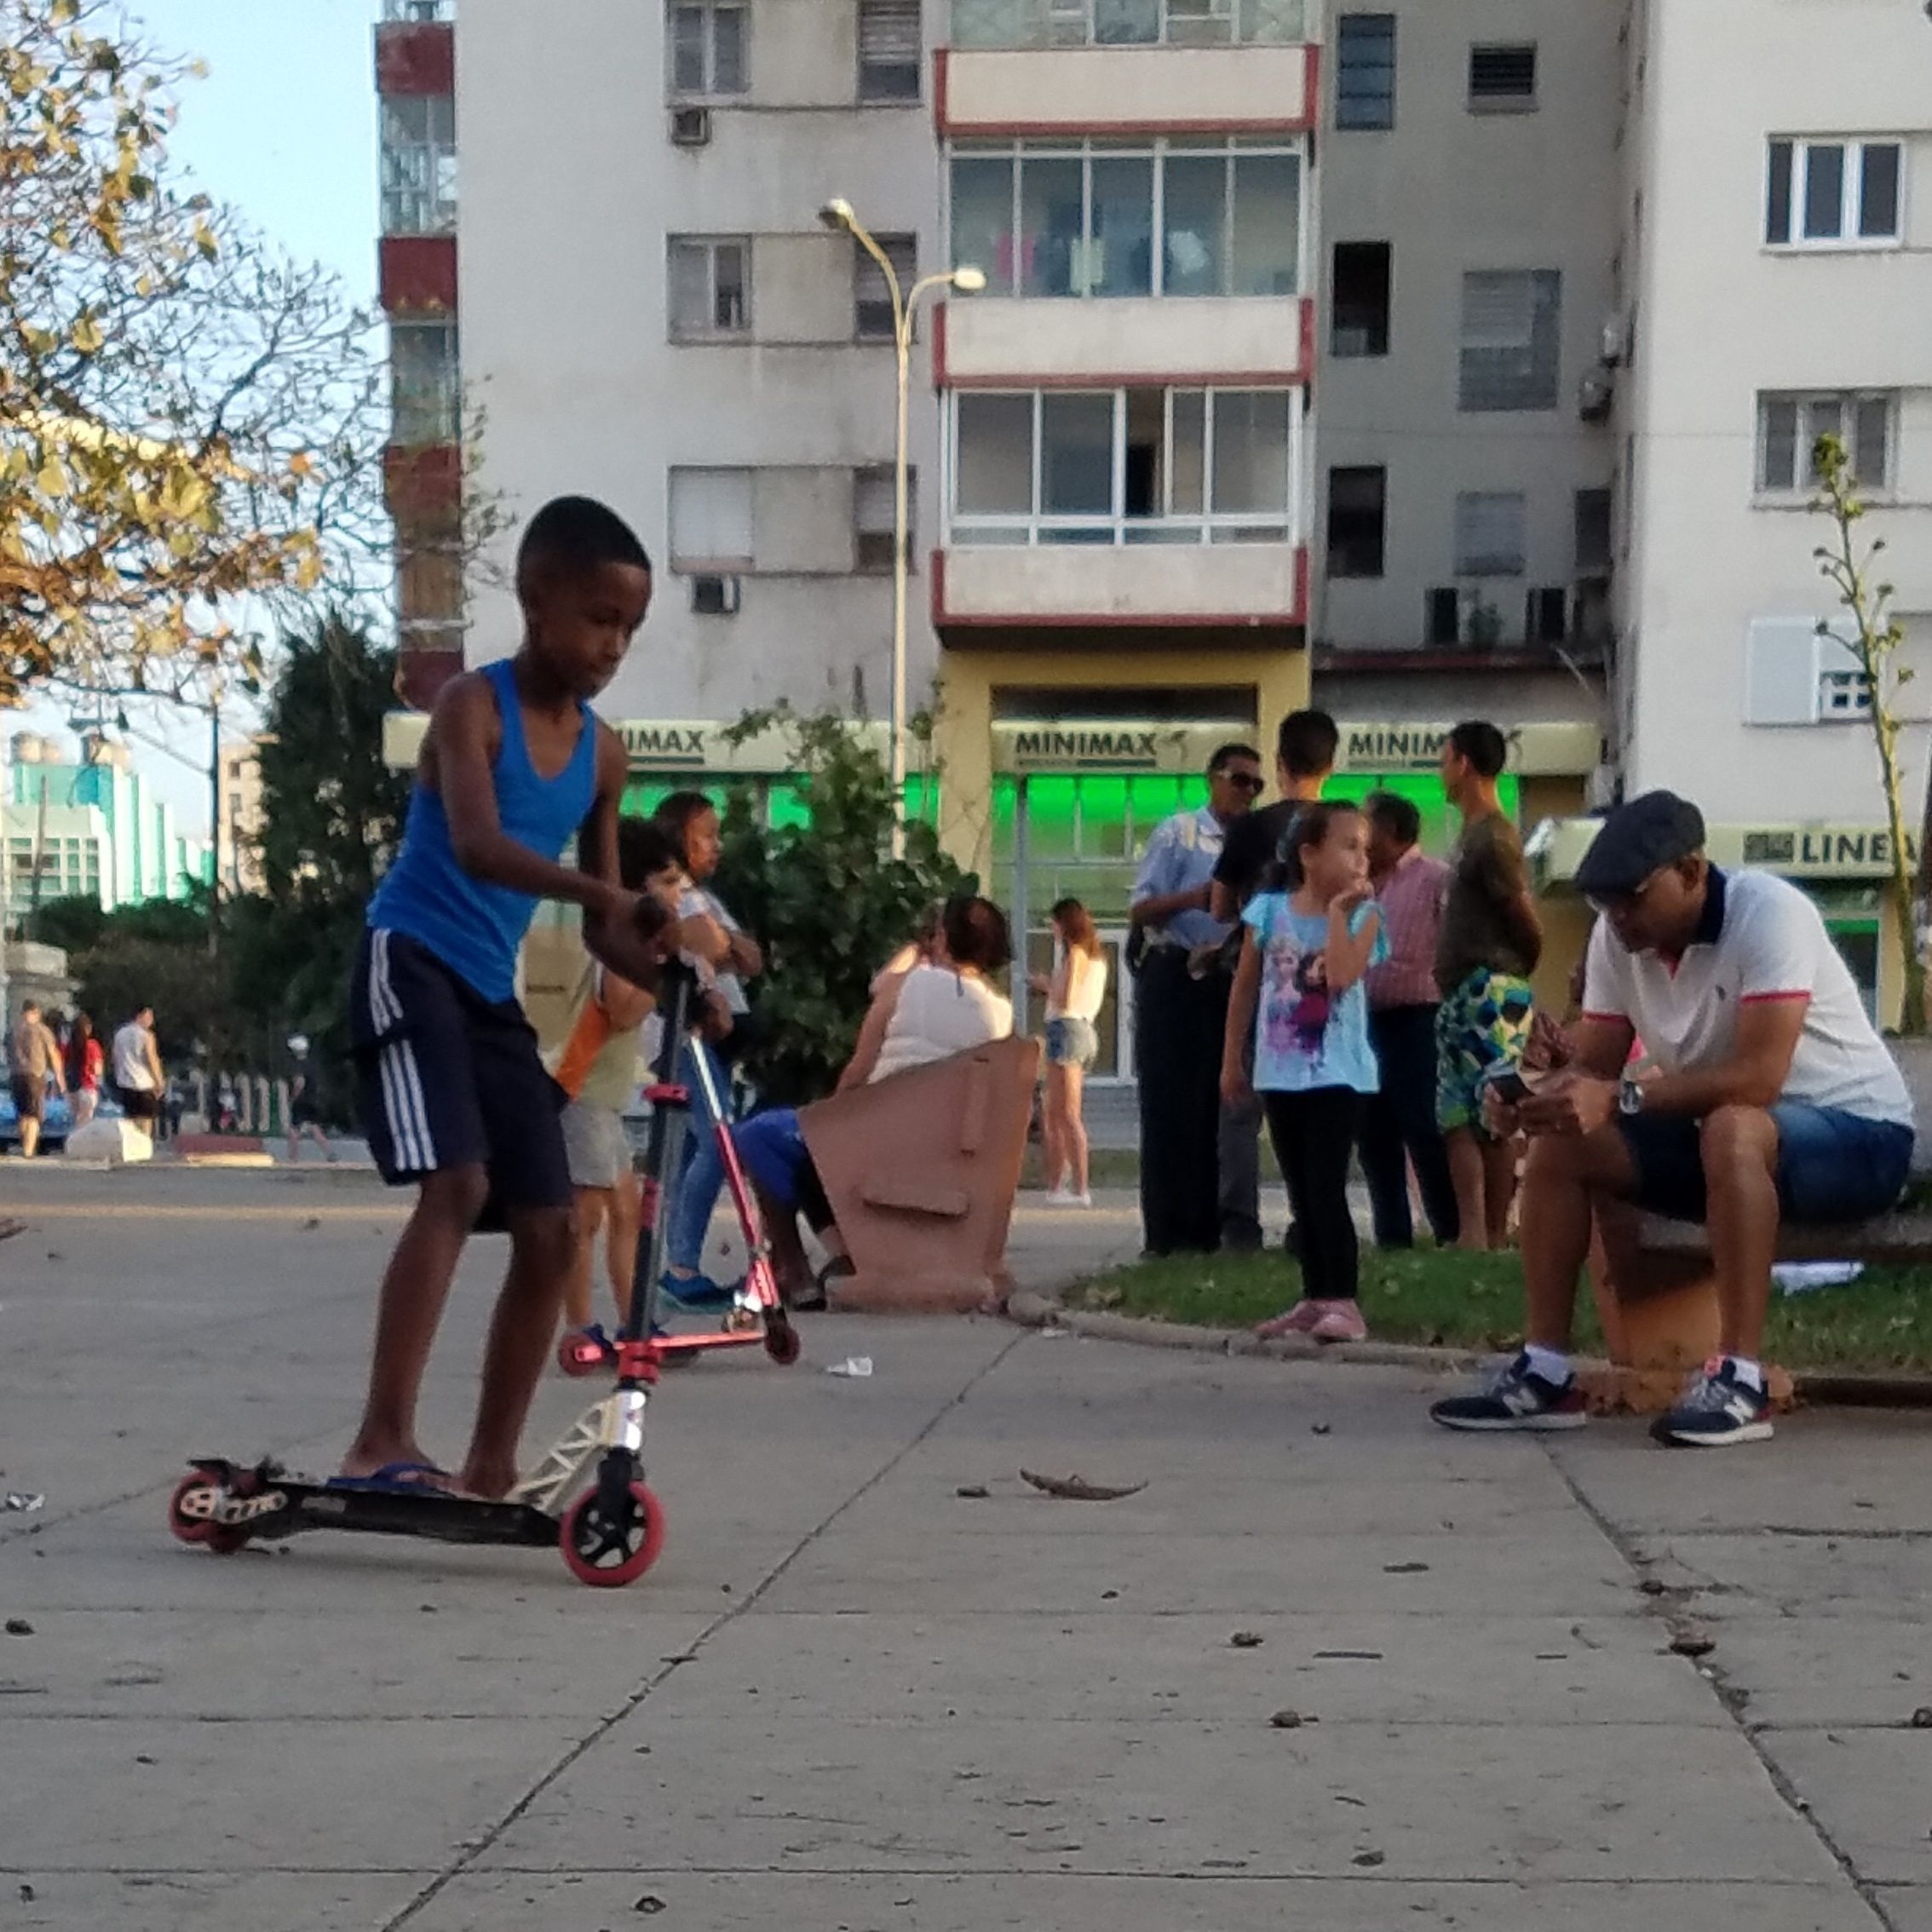 Kids playing at a WiFi park in the outskirts of Havana, Cuba. The adults are paying for the ilegal hourly WiFi so they can communicate with family members whom they haven't seen since they left Cuba.